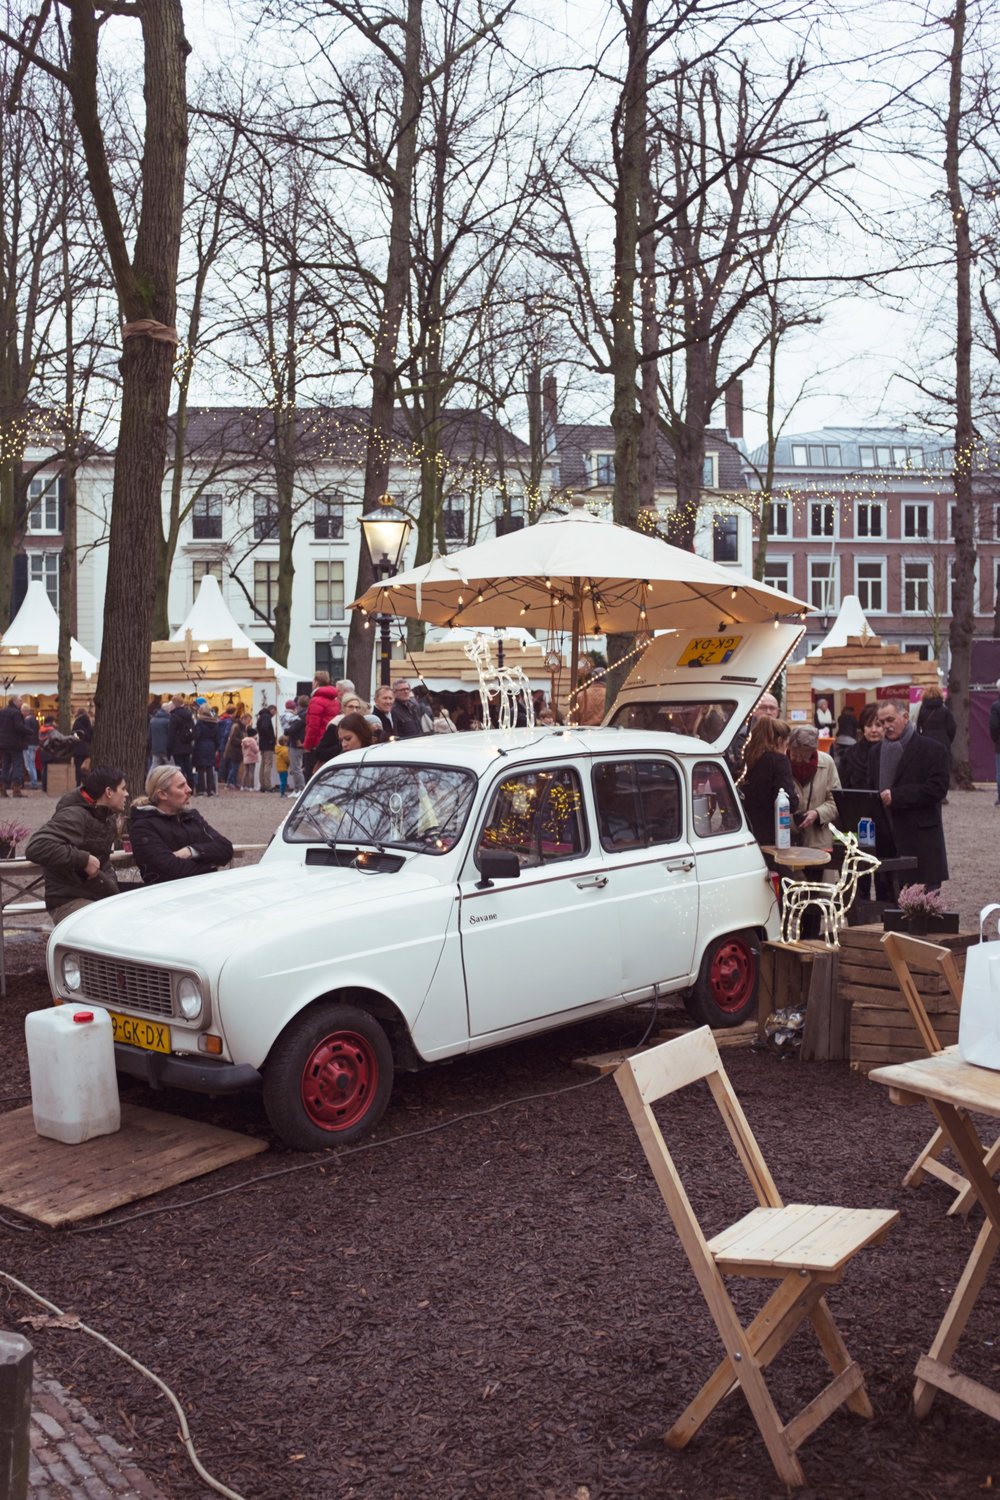 Christmas in the Netherlands via whenwewed.co